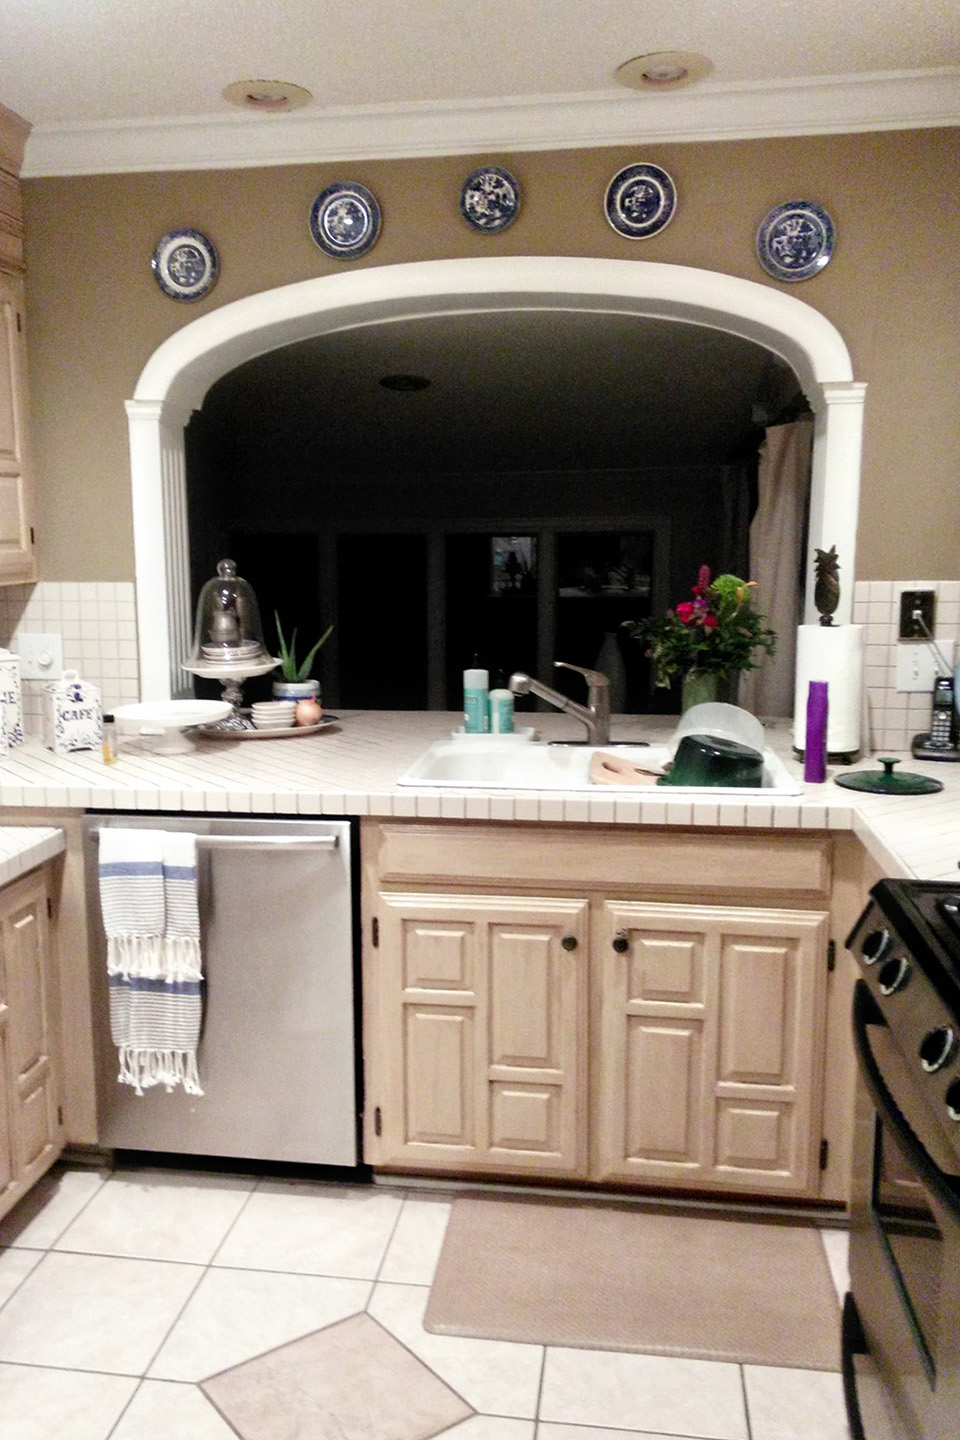 Kitchen Remodel on a Budget: 5 Low-Cost Ideas to Help You ...